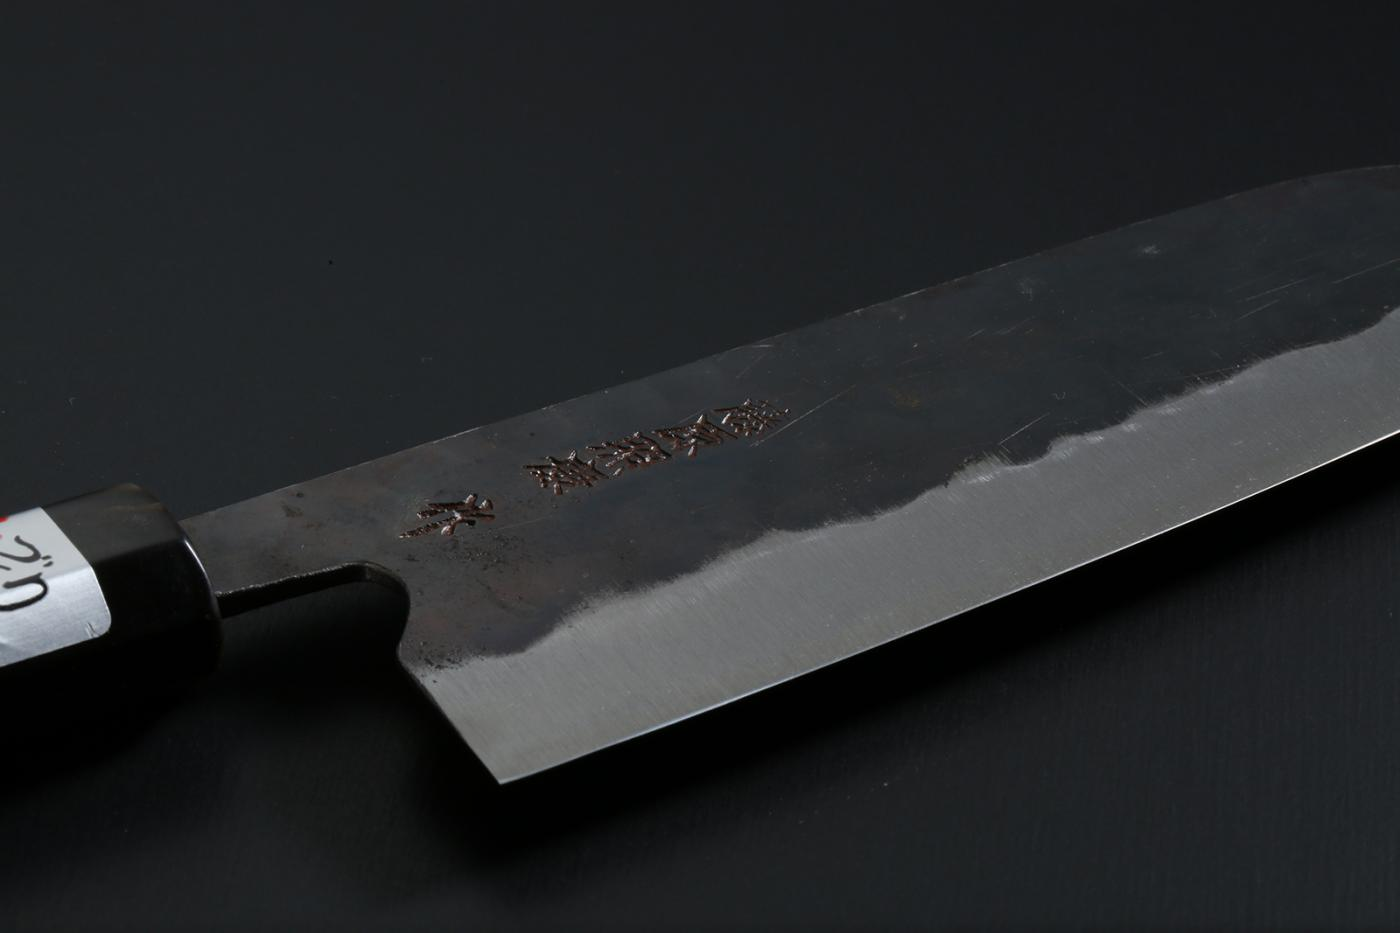 Santoku knife [Denka] + Octagonal handle with buffalo horn ferrule